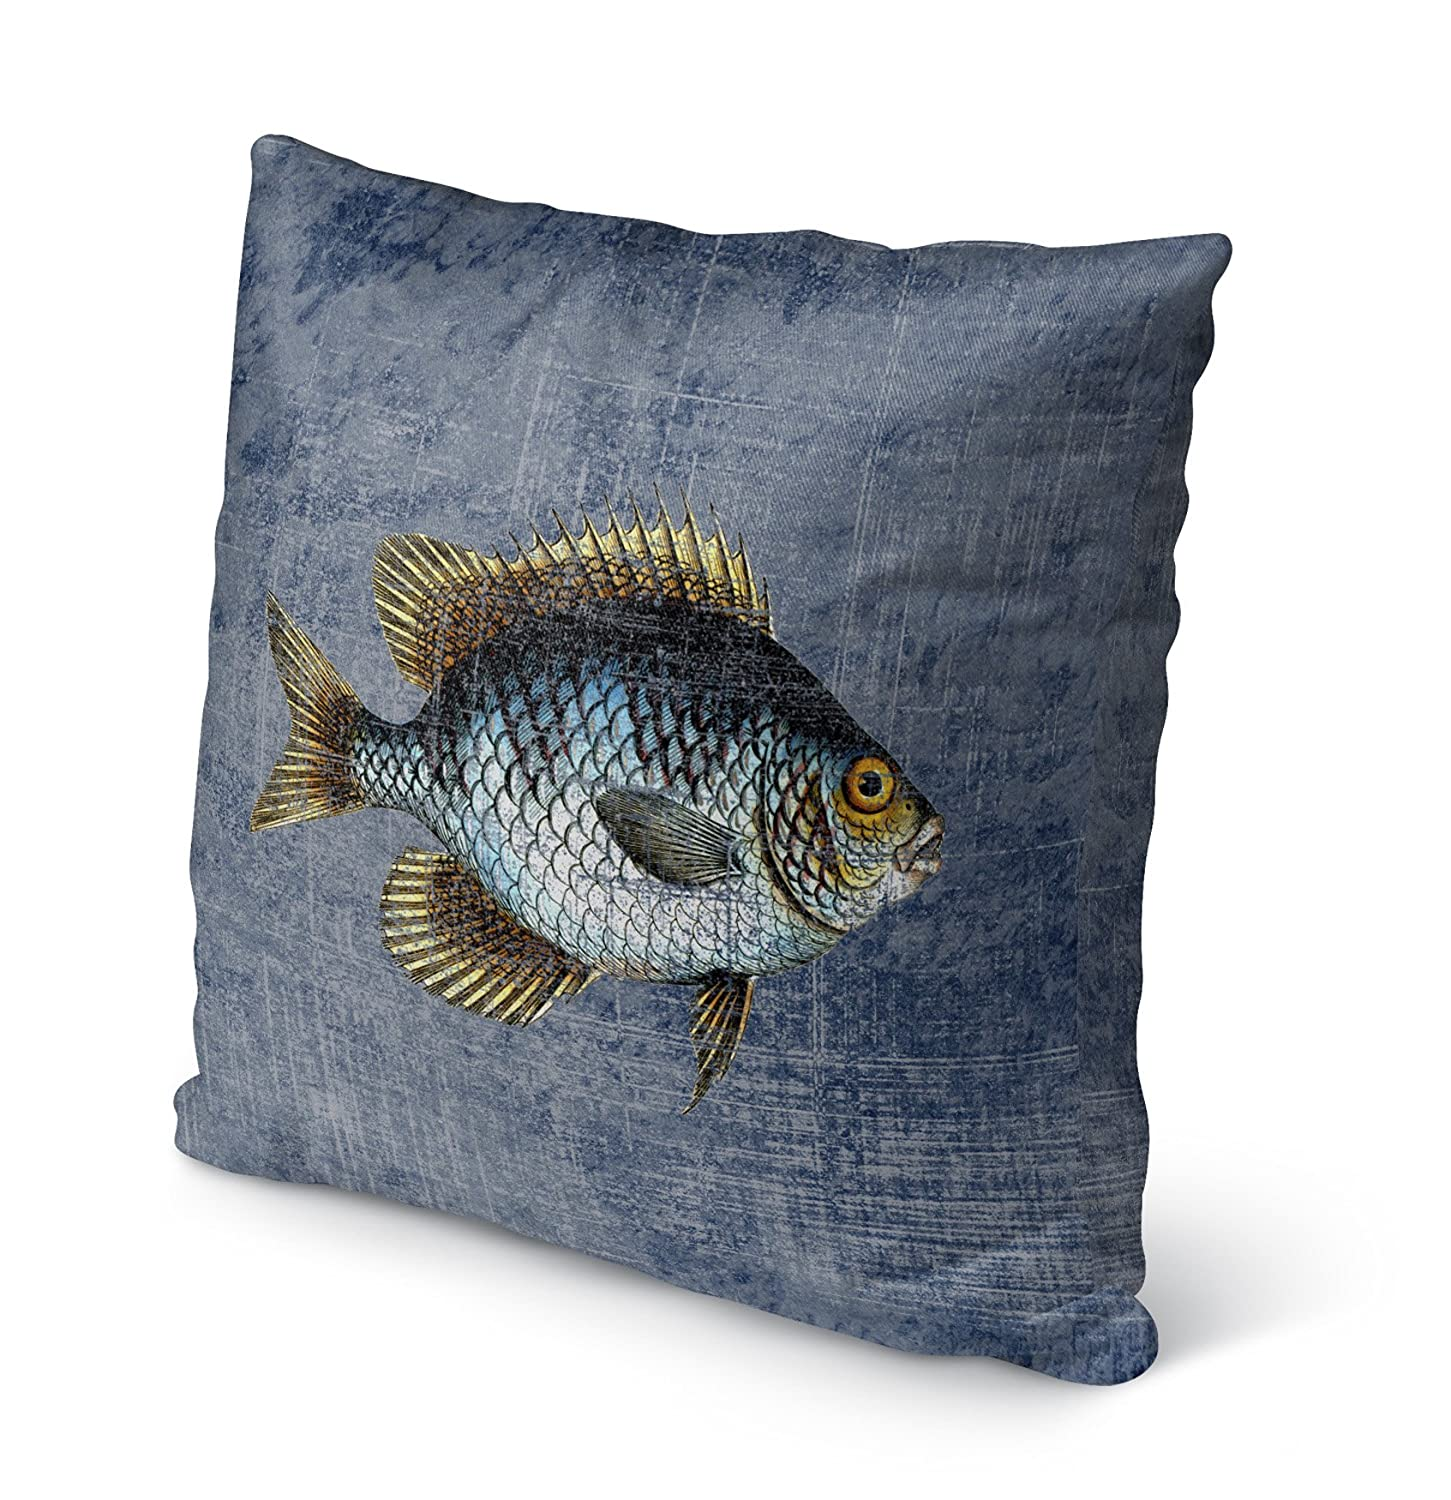 Blue//Gold//Brown Size: 16X16X6 - KAVKA Designs Fish Indoor-Outdoor Pillow, TELAVC8143OP16 - SALTWATER Collection